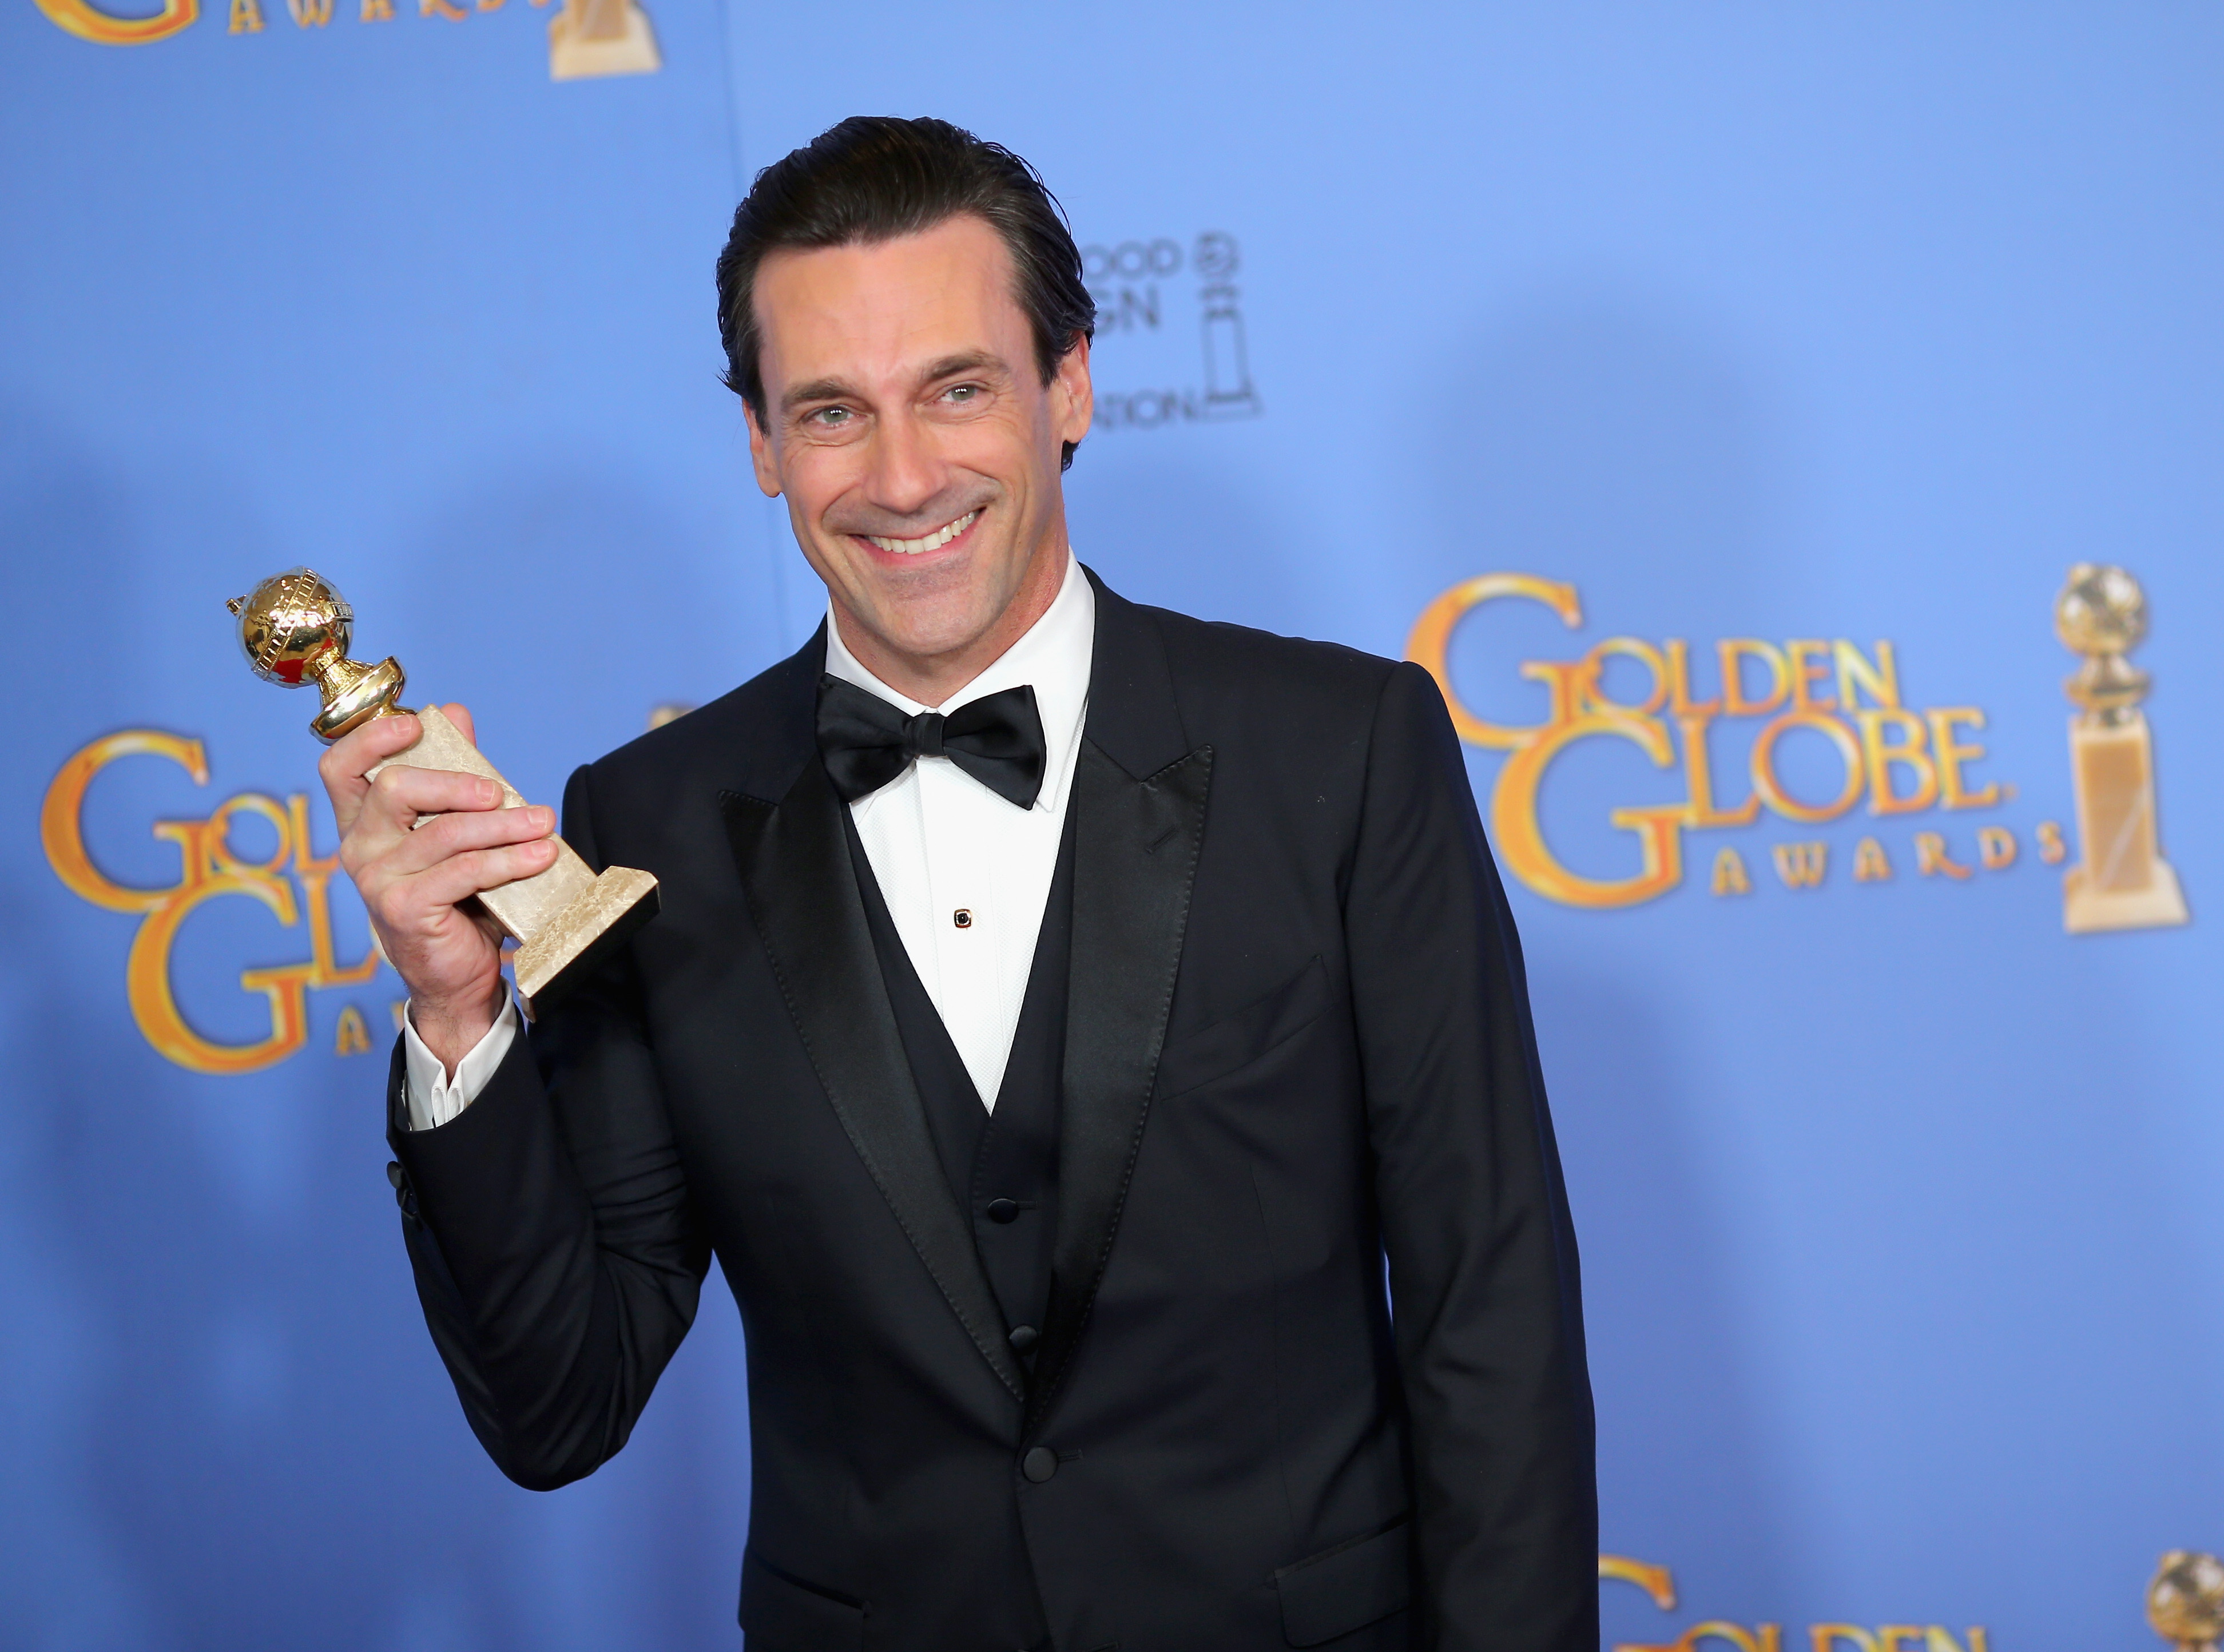 Actor Jon Hamm winner of Best Performance by an Actor In A Television Series - Drama, poses in the press room during the 73rd Annual Golden Globe Awards held at the Beverly Hilton Hotel on January 10, 2016 in Beverly Hills, California.